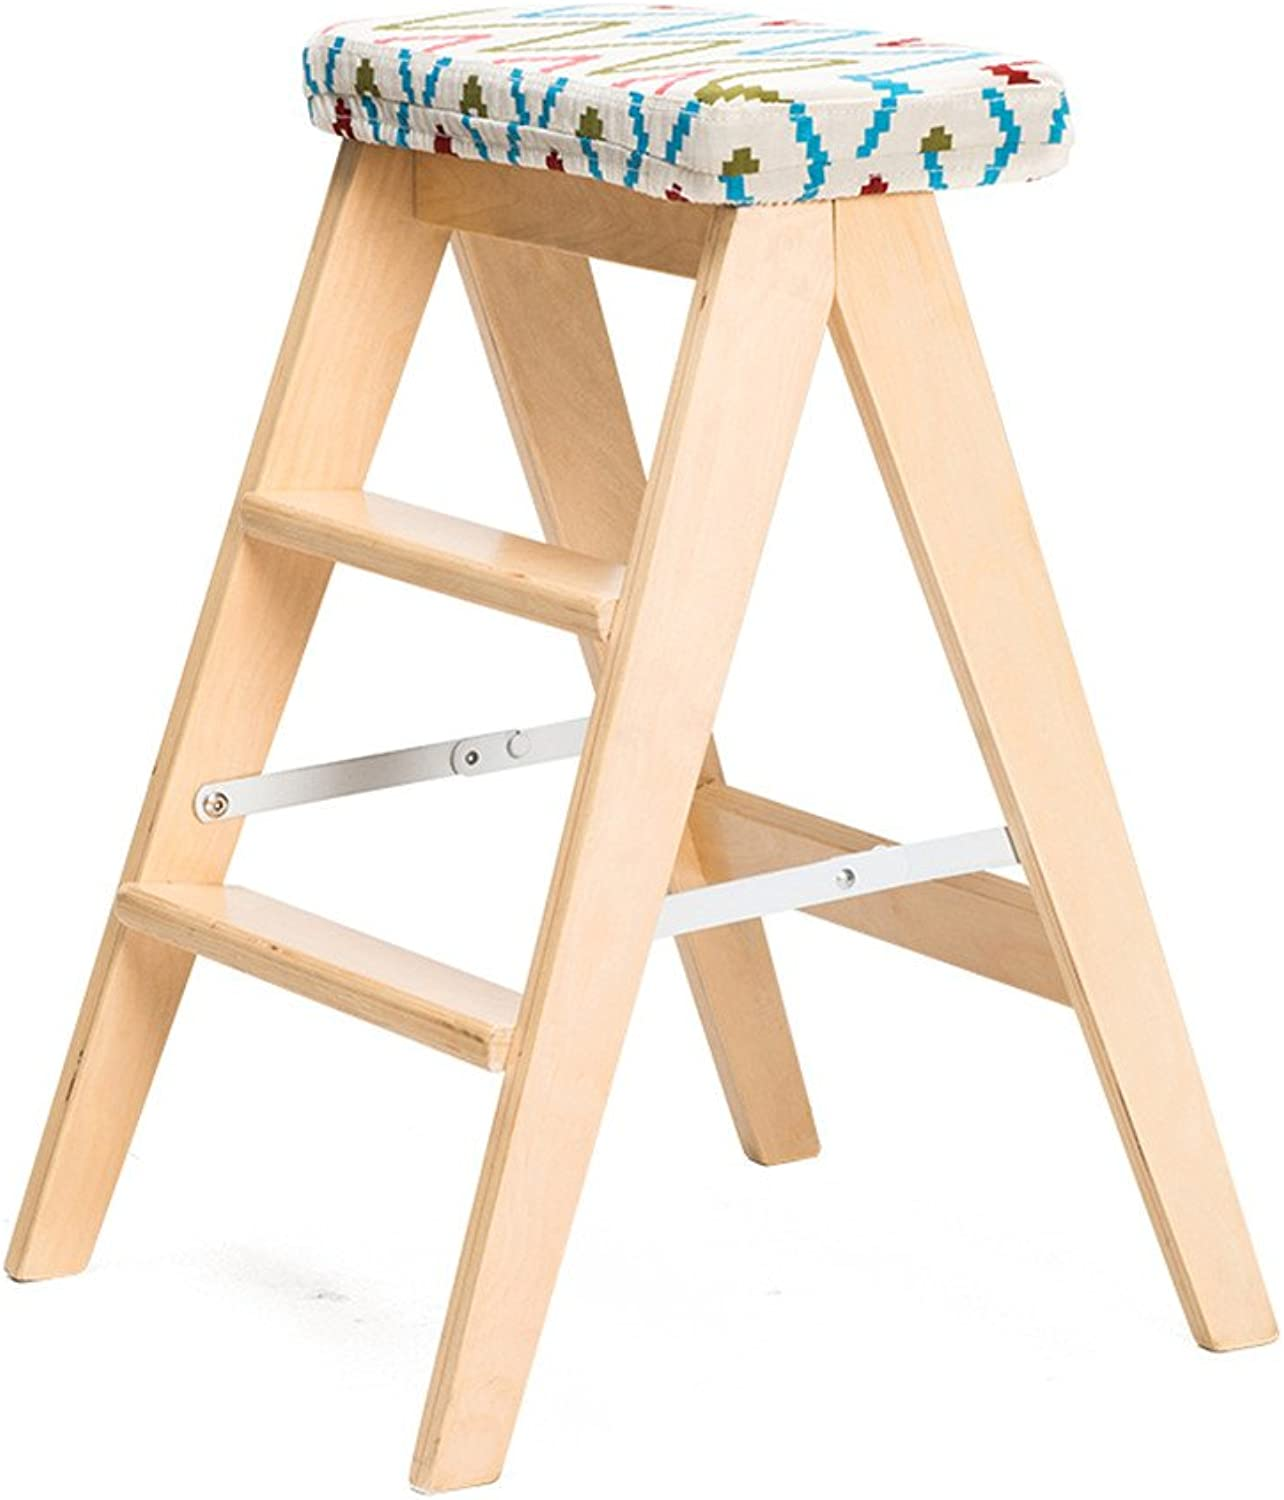 Yxsd Folding Stool Ladder With Cushion Dual-use 3-step Ladder, Birch, 3 Styles (color   Wood color, Size   3 )